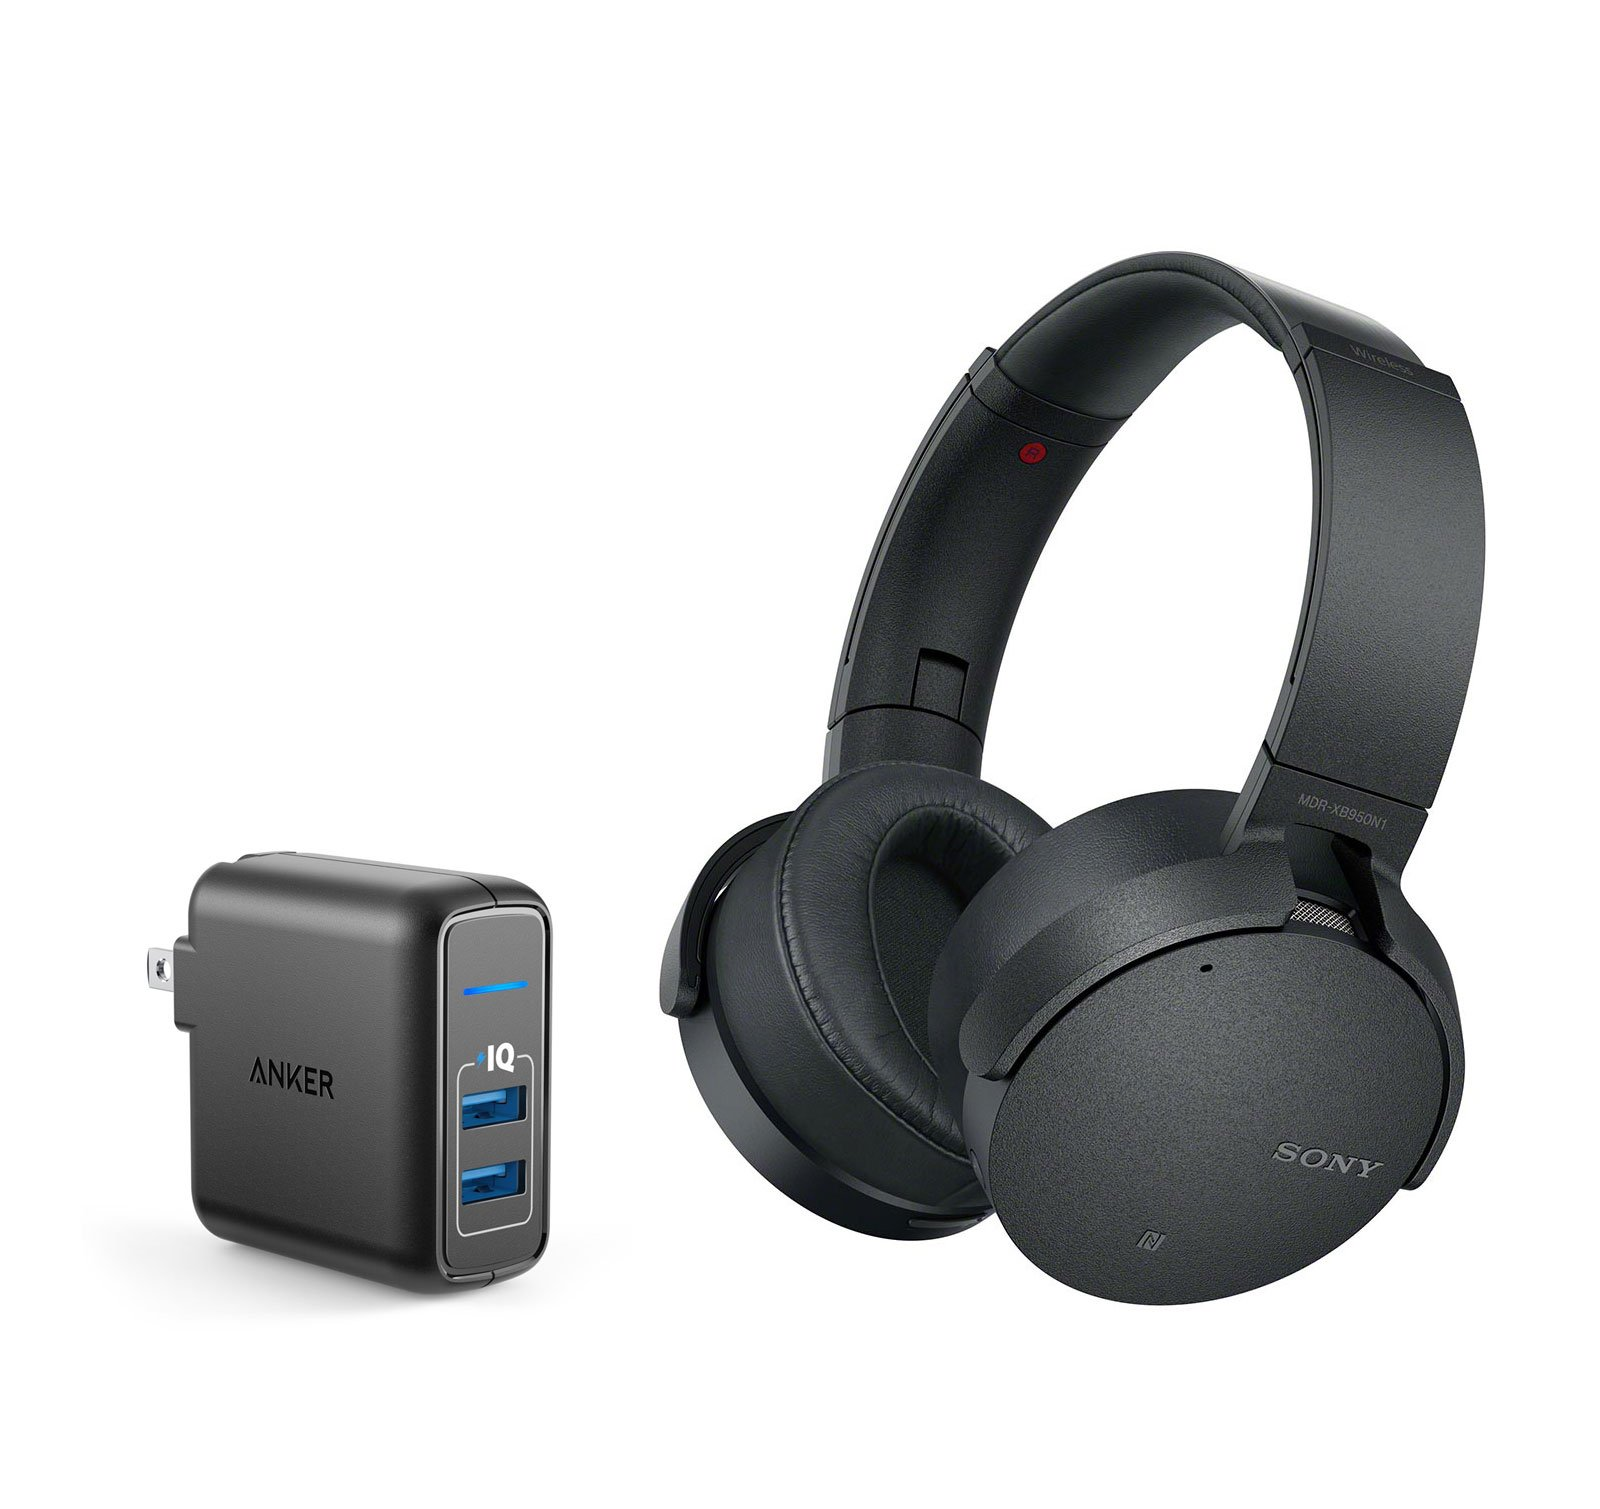 Sony MDRXB950N1/B Noise Cancelling Bluetooth Headphone Bundle with Dual Port 24W USB Travel Wall Charger - Black